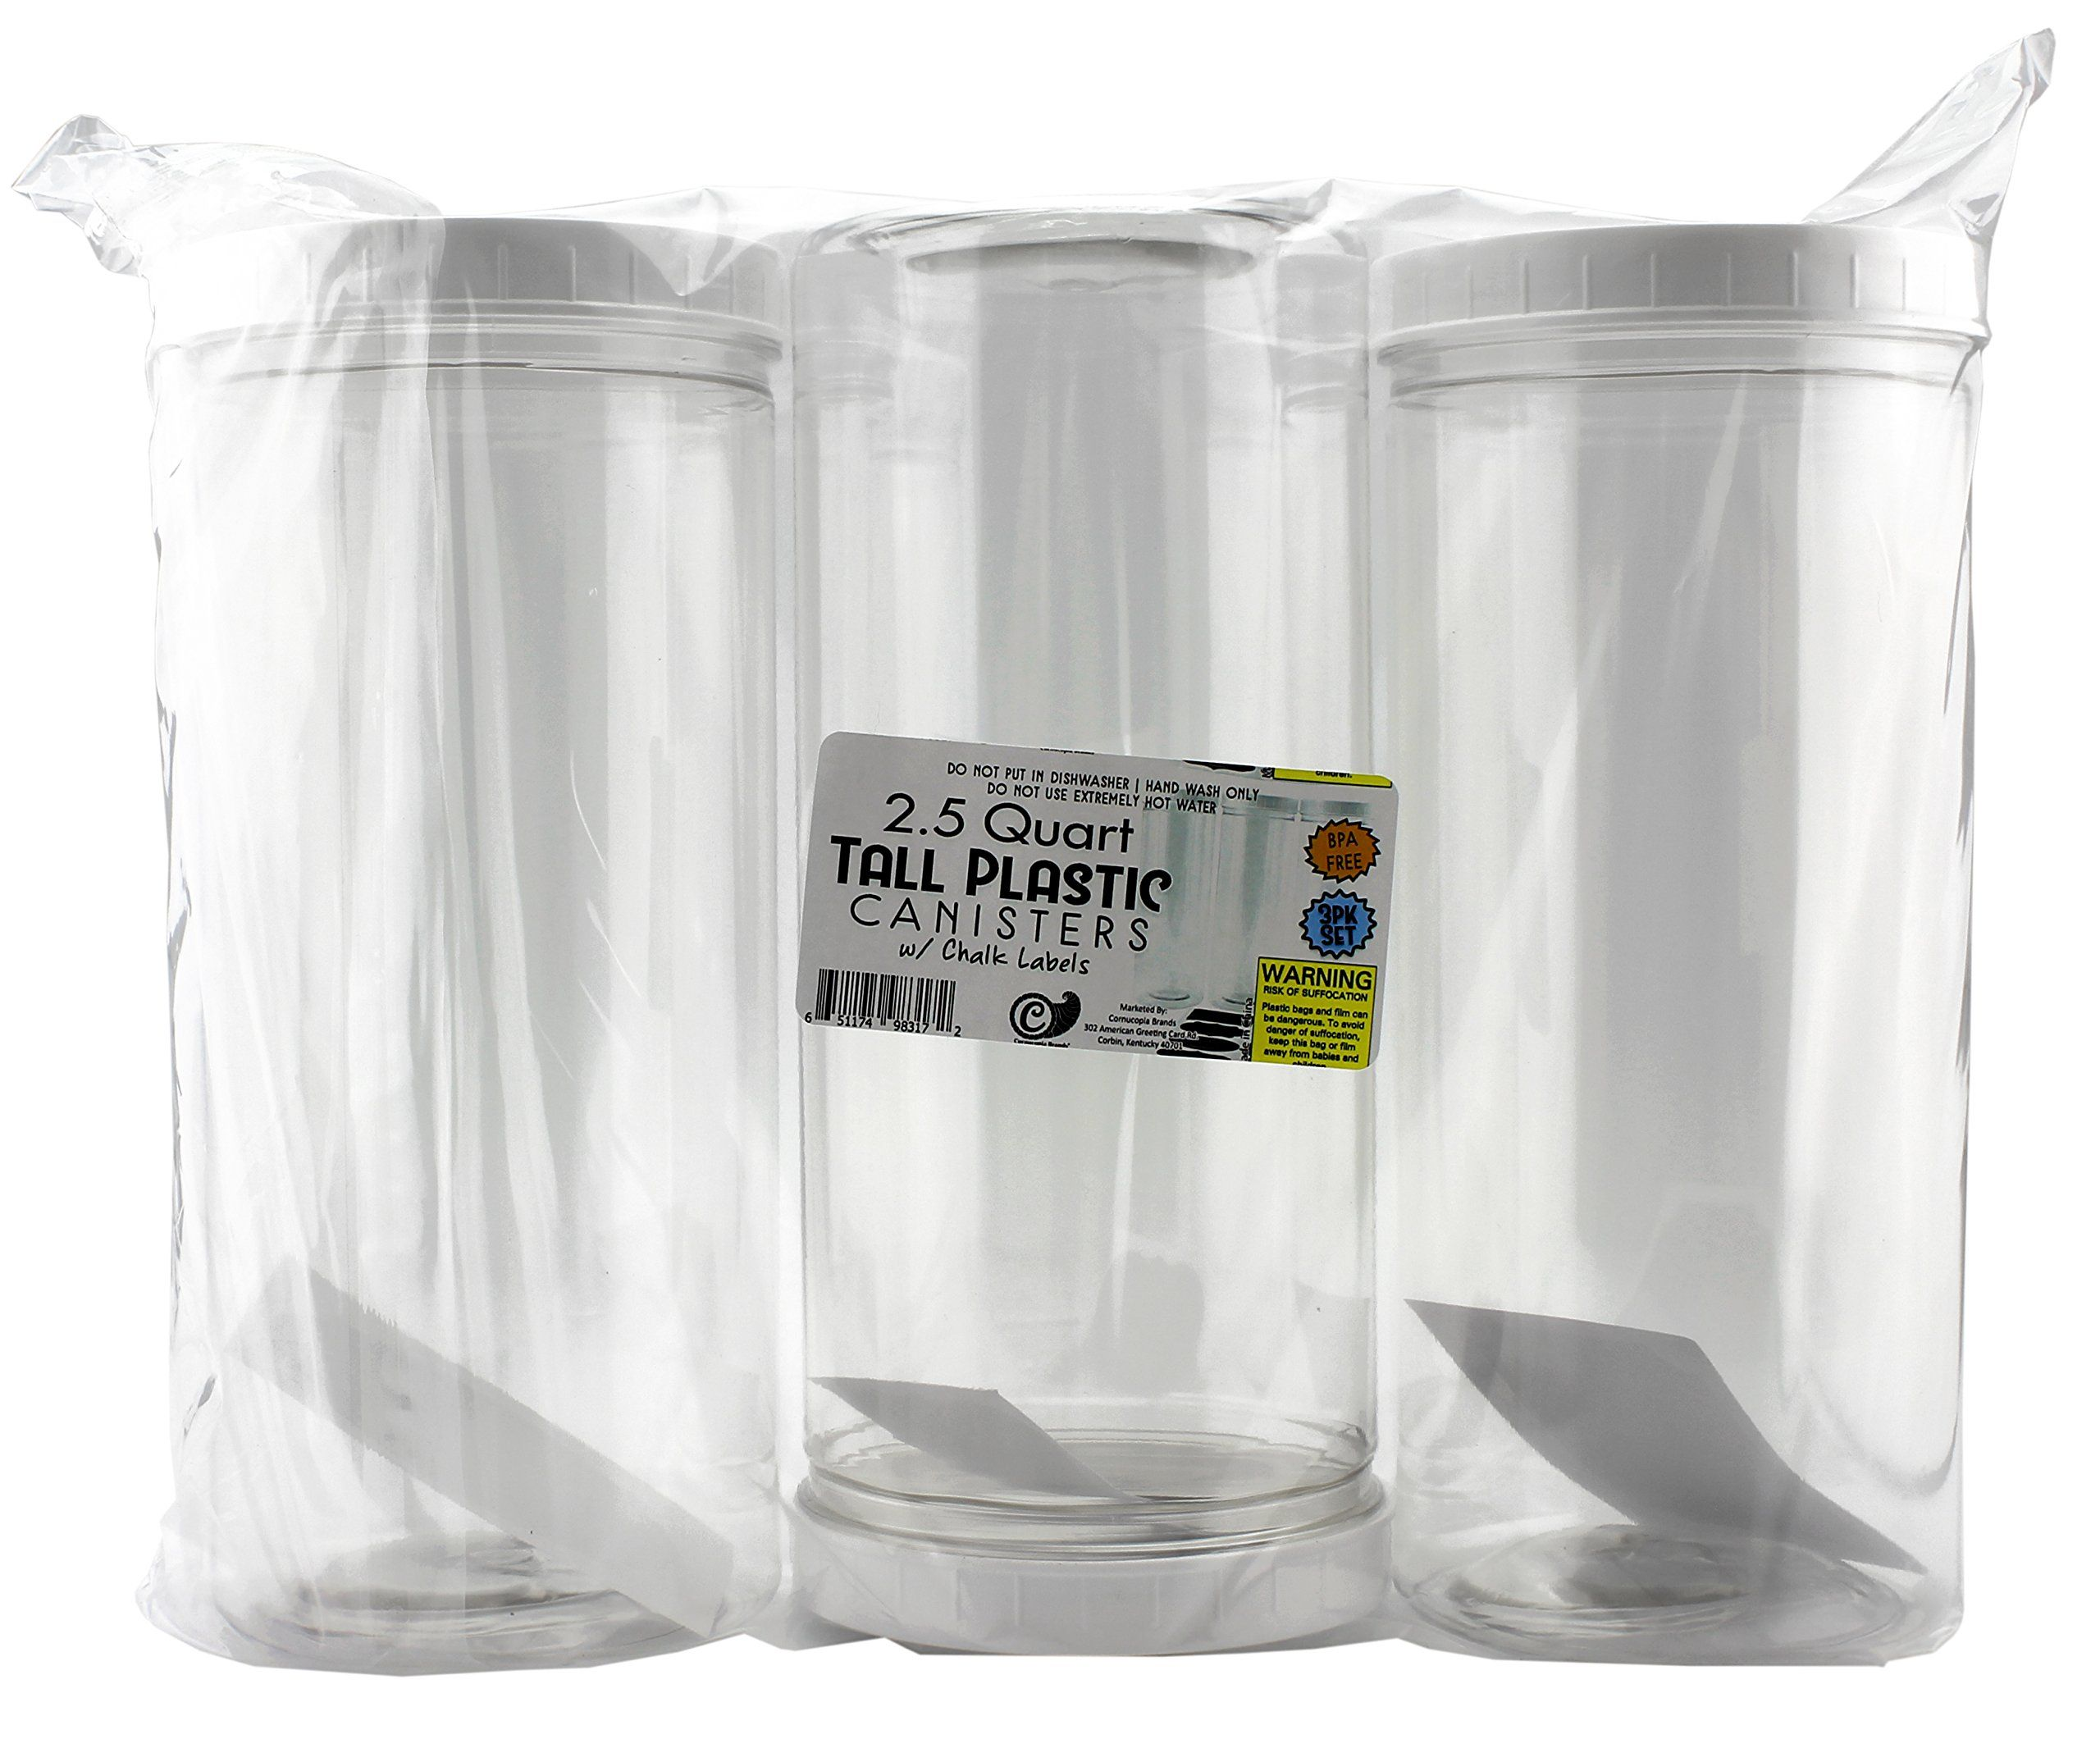 Three Tall Clear Plastic Canisters W White Lids And Chalk Labels 2 5 Quart 10 Cup Capacity 10inch High Bpafree Pet Plastic Chalk Labels Plastic Canisters Jar